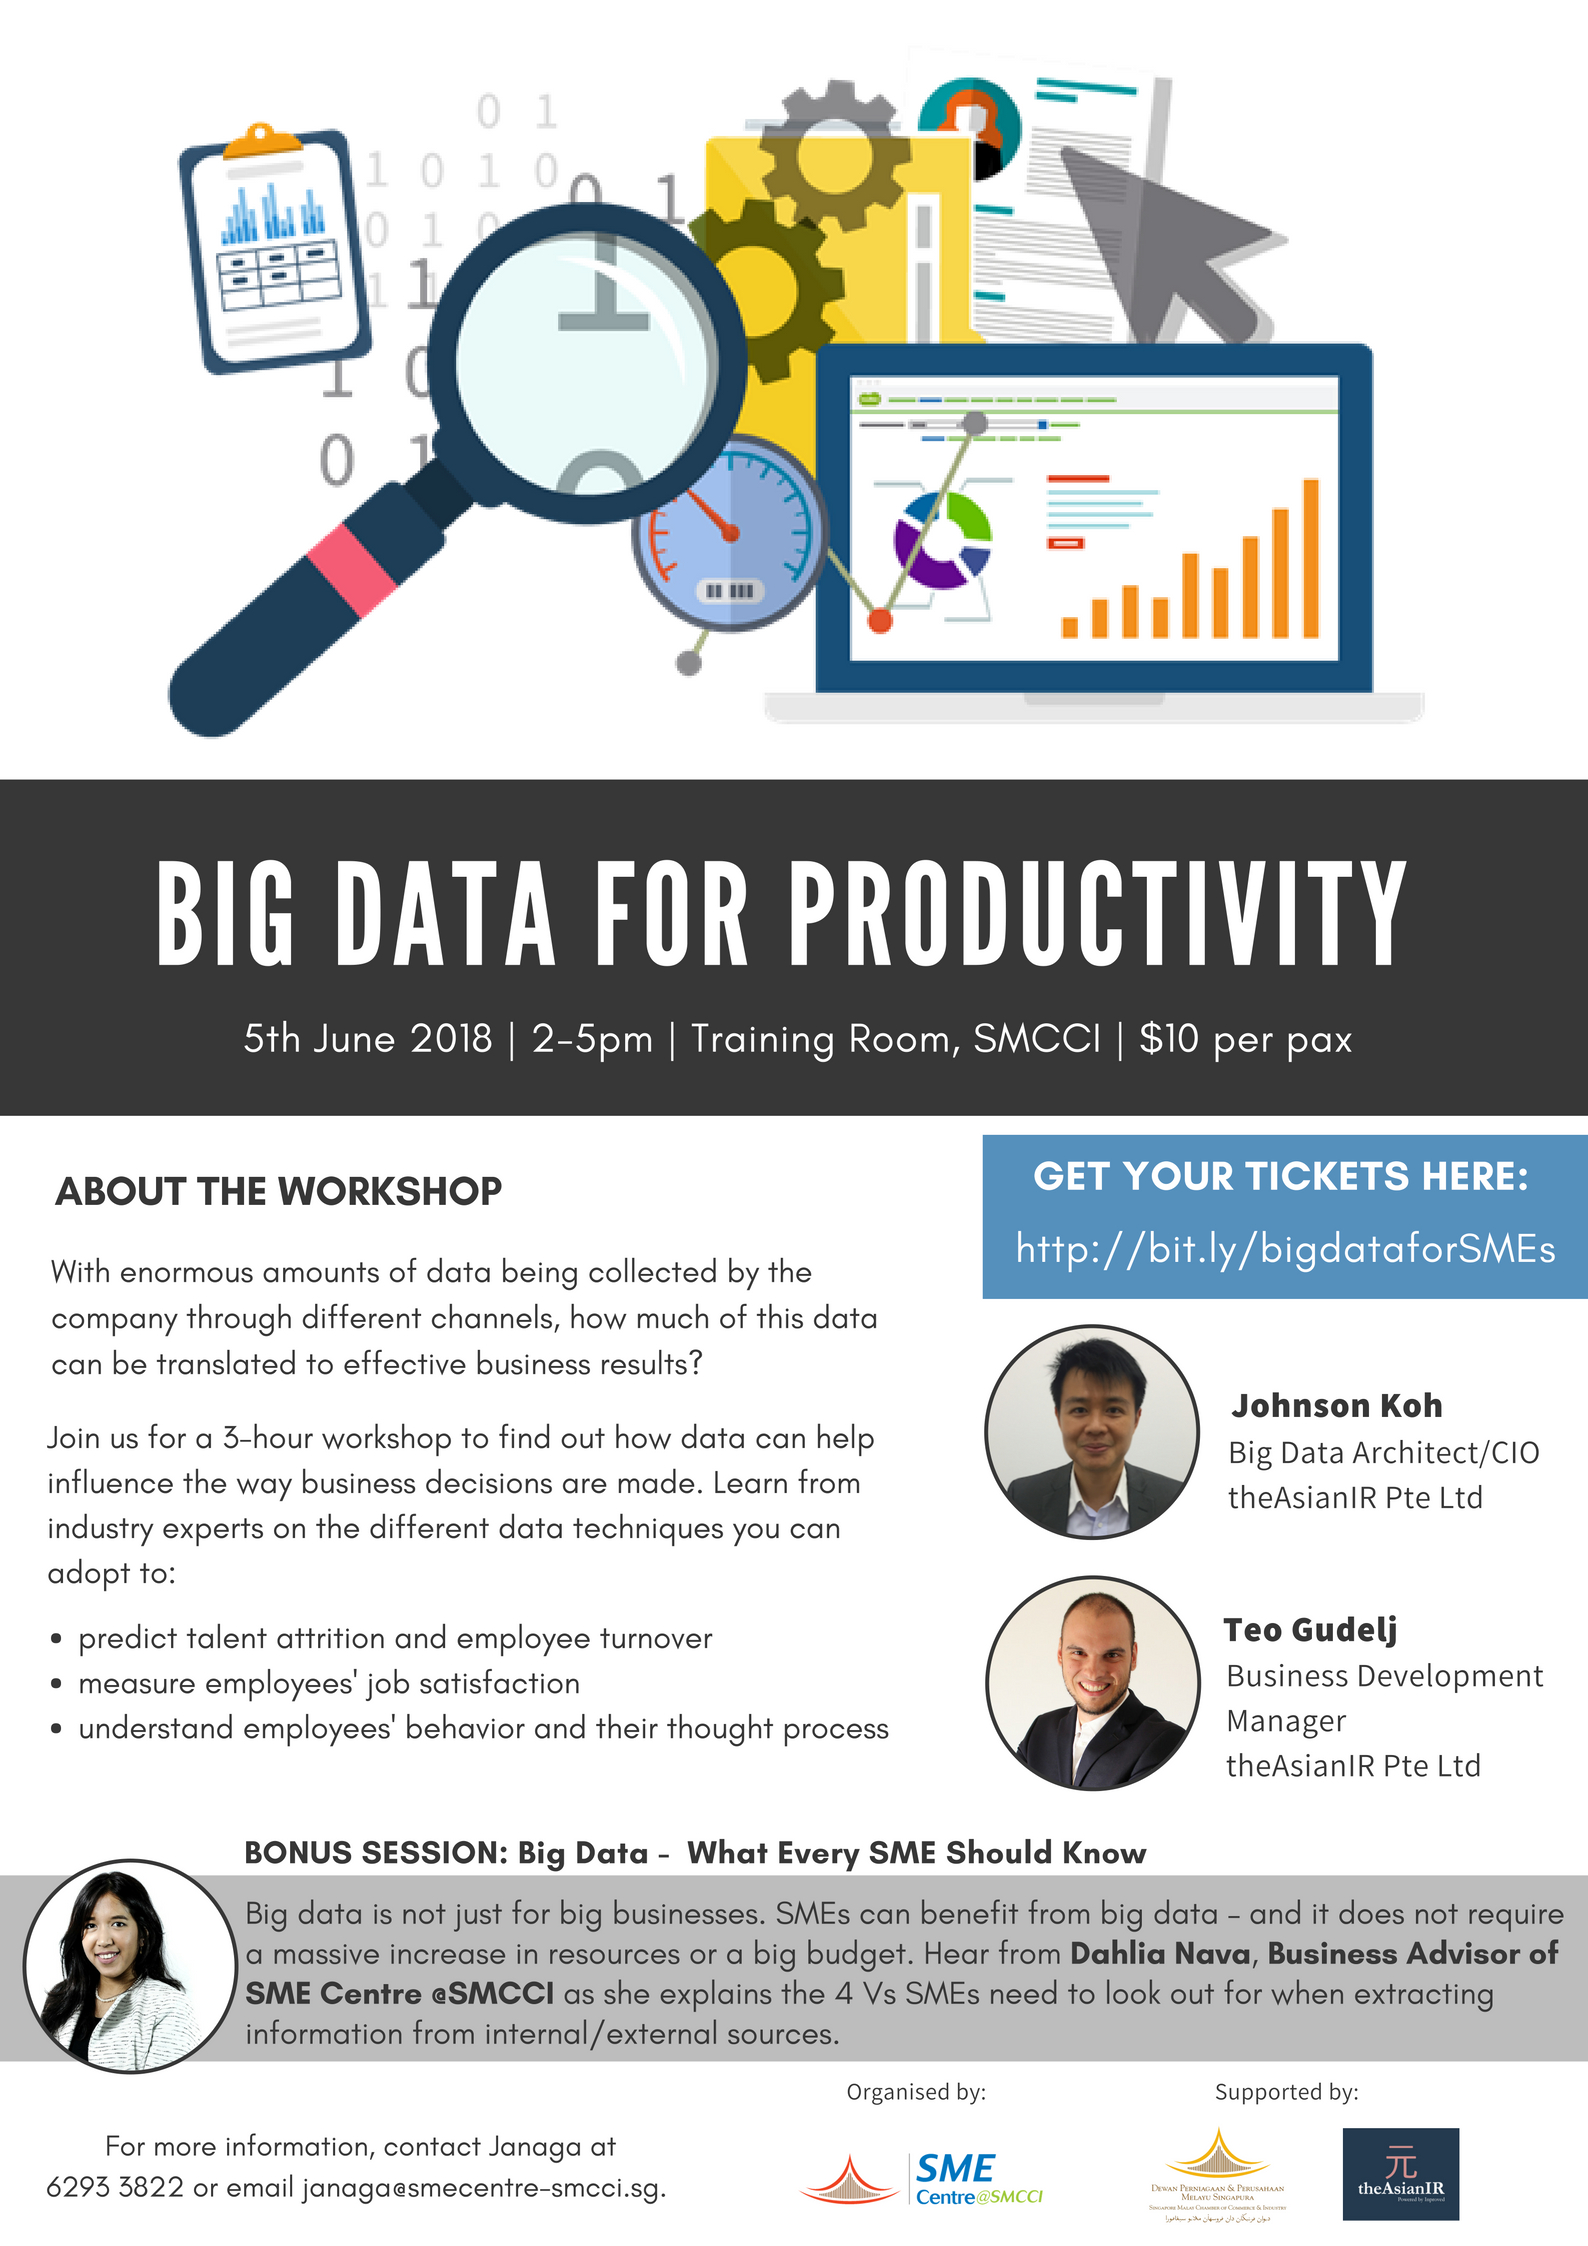 Big Data for Productivity - Main EDM